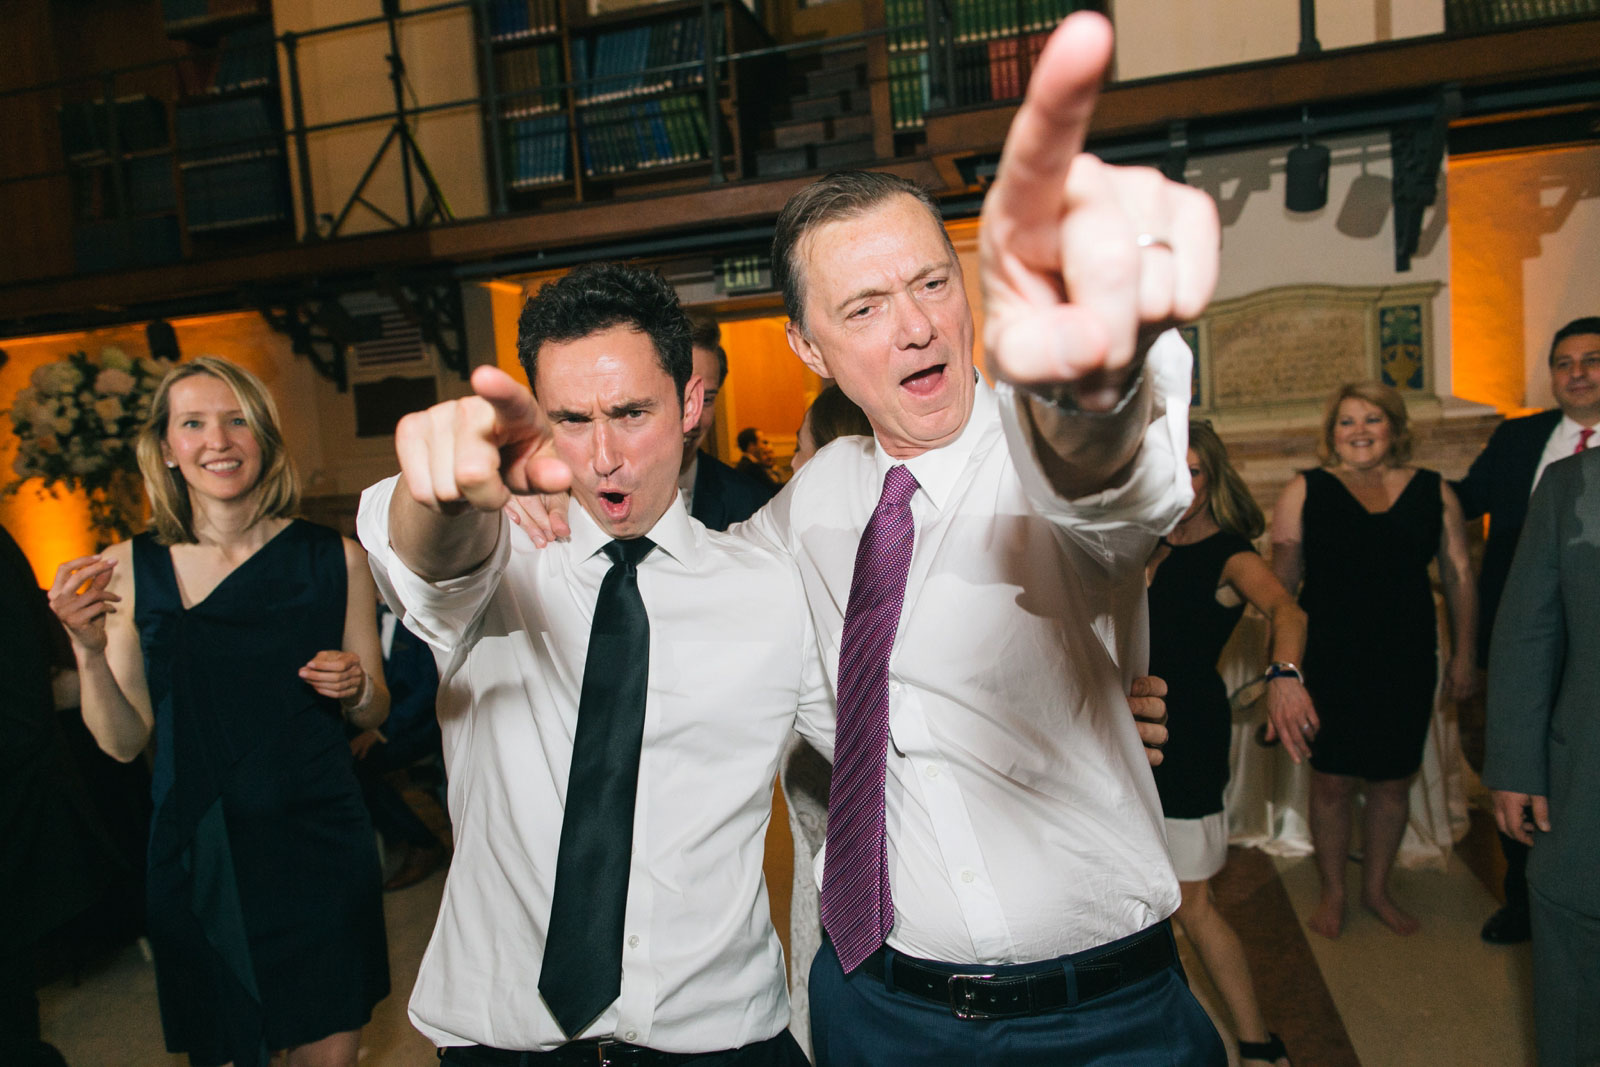 groom dancing with his dad on the dance floor at wedding reception at Boston Public Library